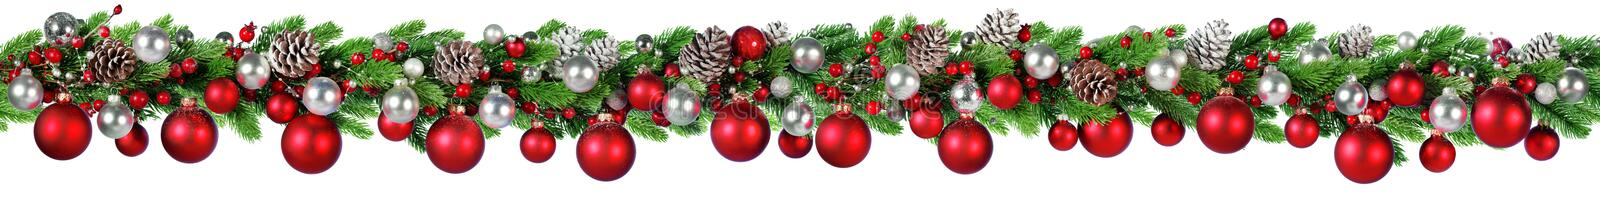 Christmas Border - Red And Silver Ball Hanging royalty free stock photos